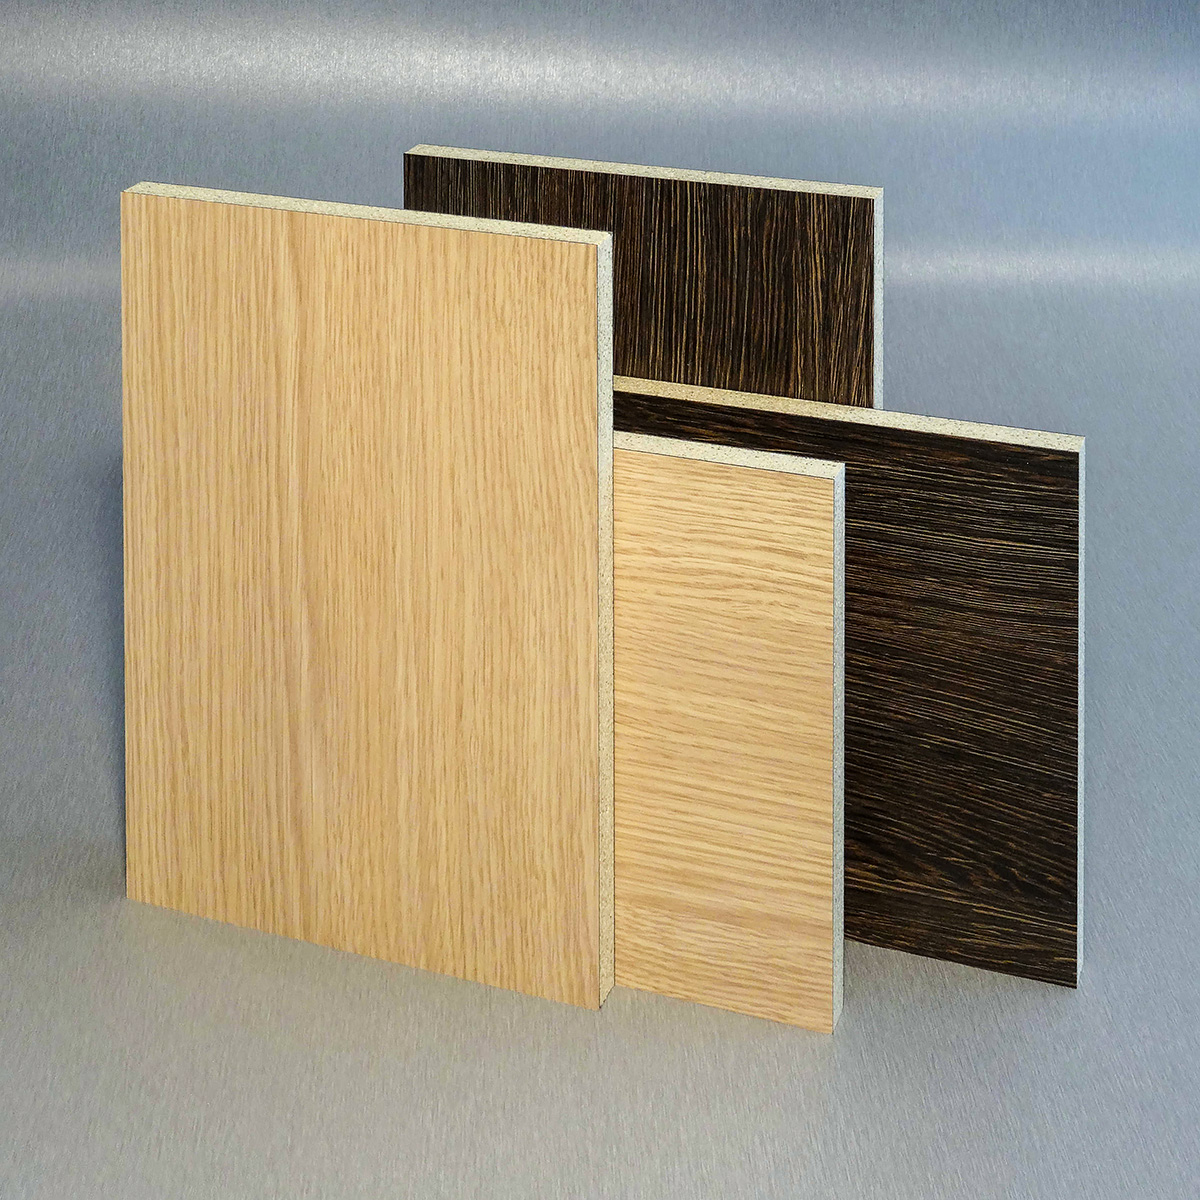 Non-combustible decorative Boards